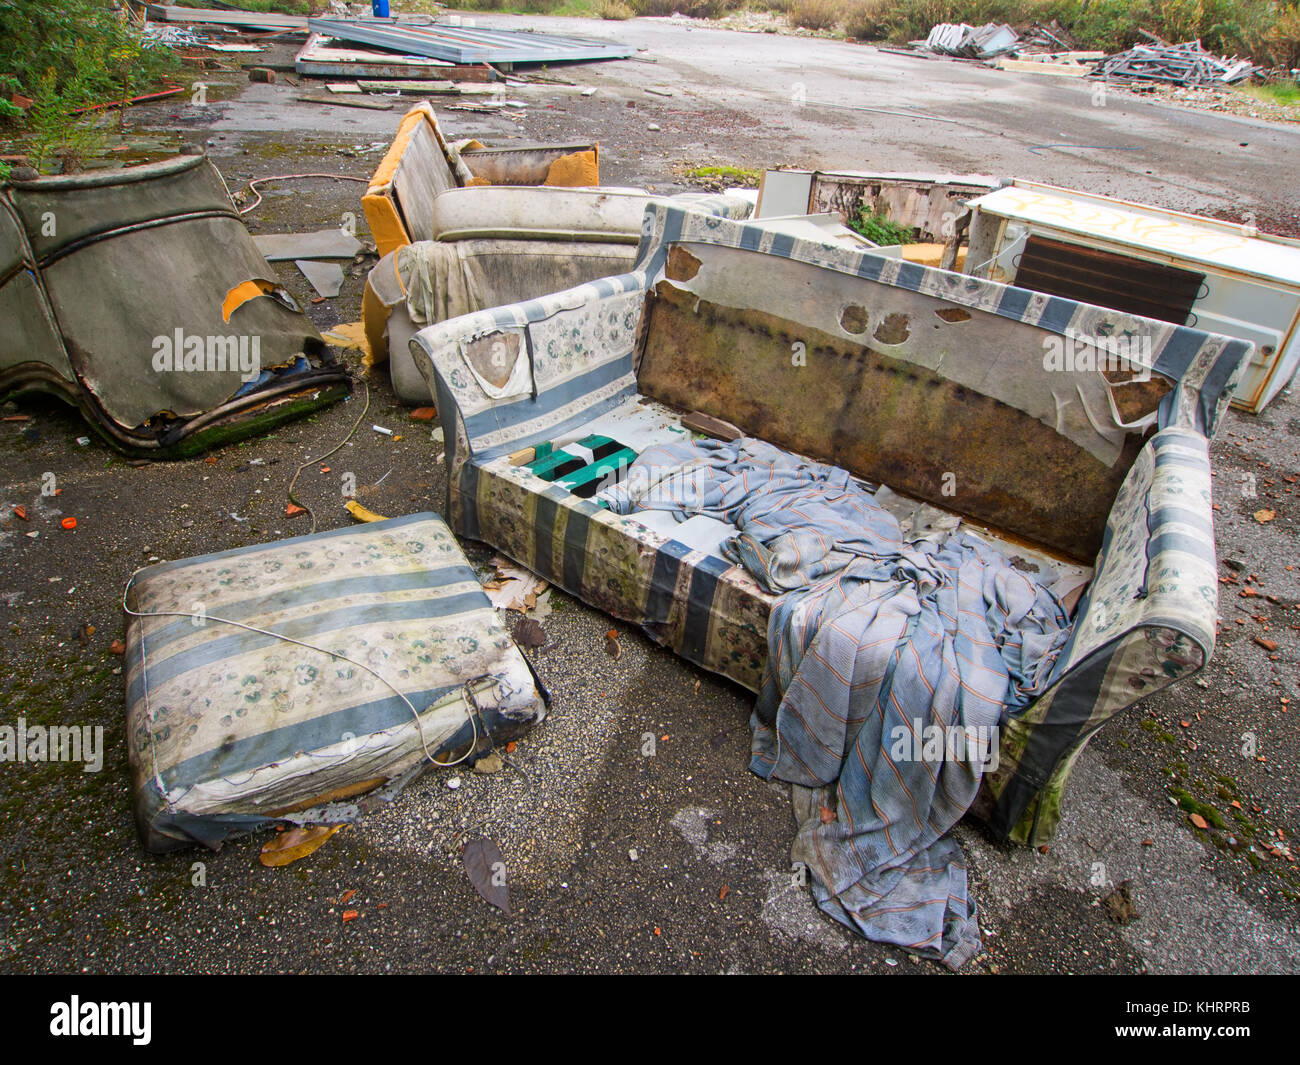 Environmental pollution. Fly tipping. - Stock Image